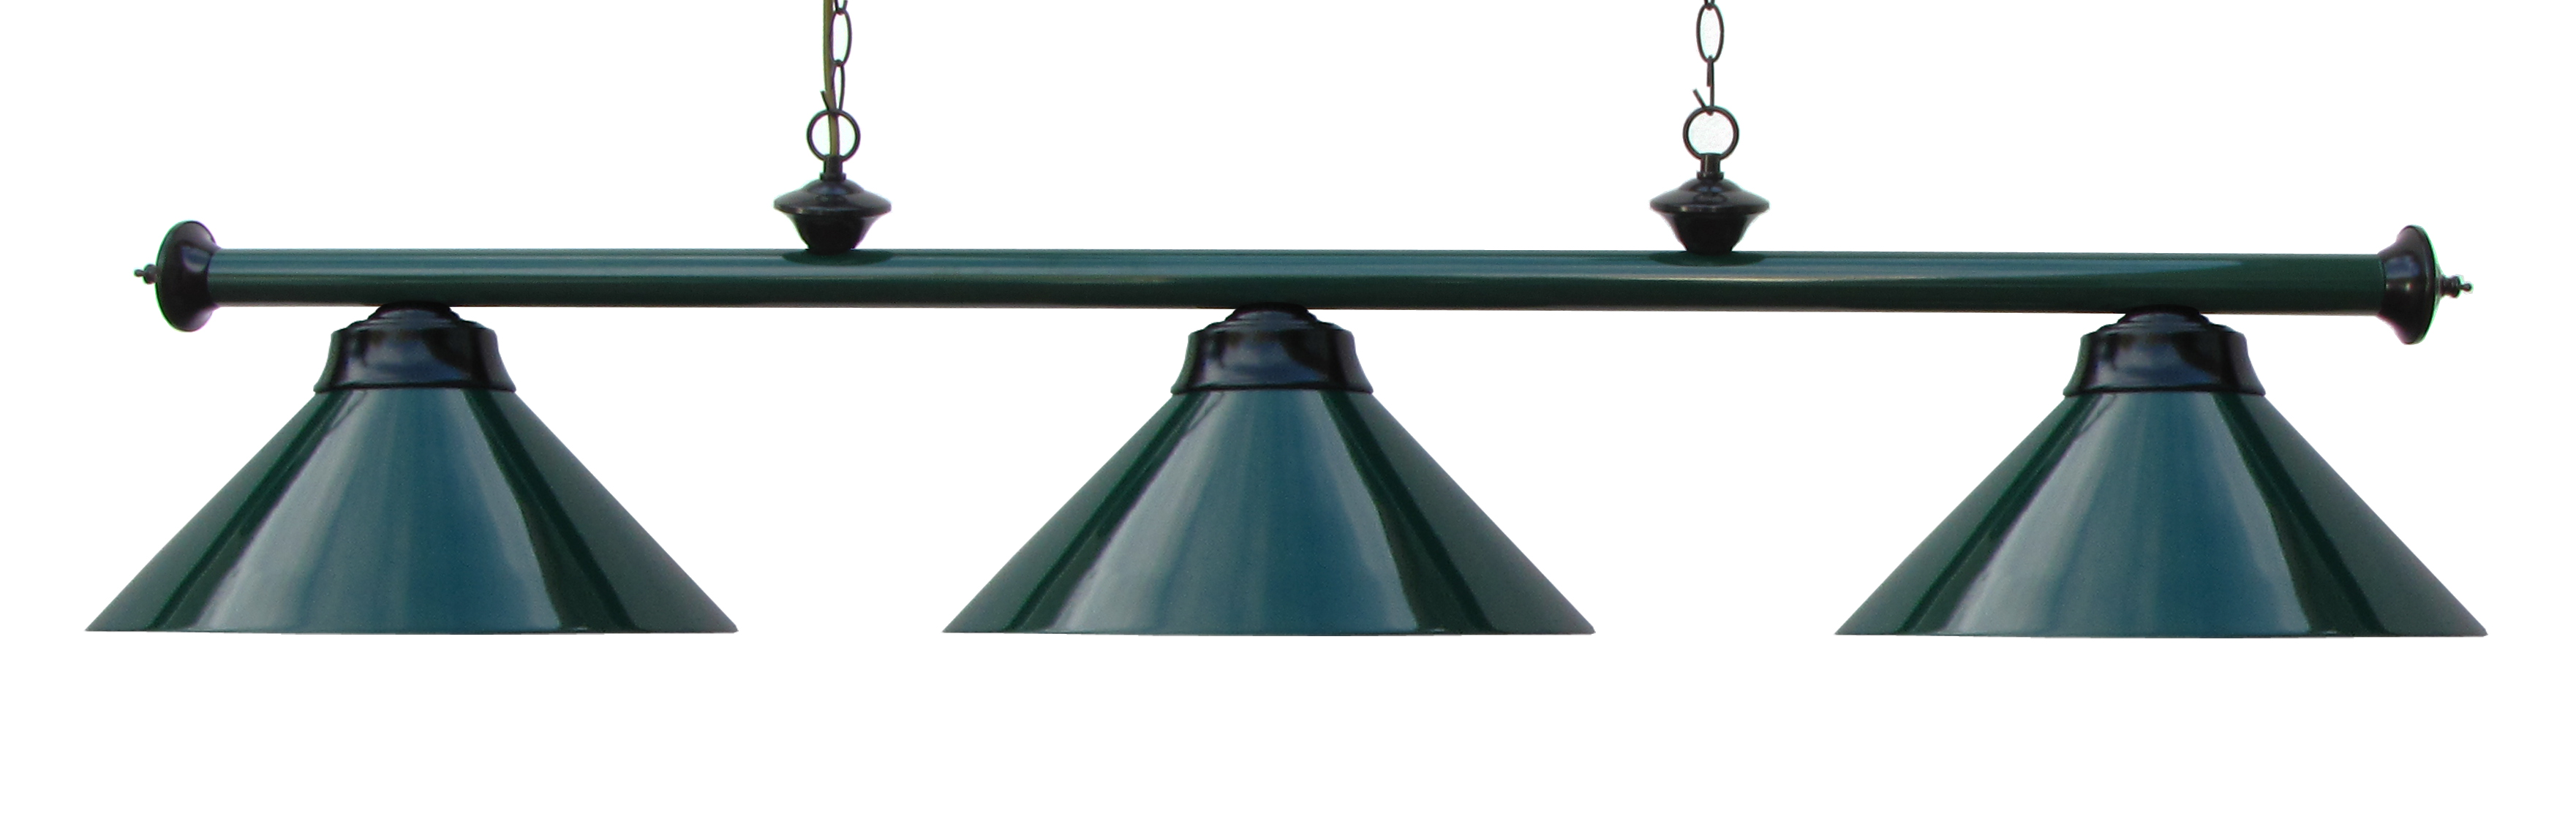 "59"" Metal Pool Table Light Pool Table Light Green   Black For 7 or 8 ' Foot Tables by"